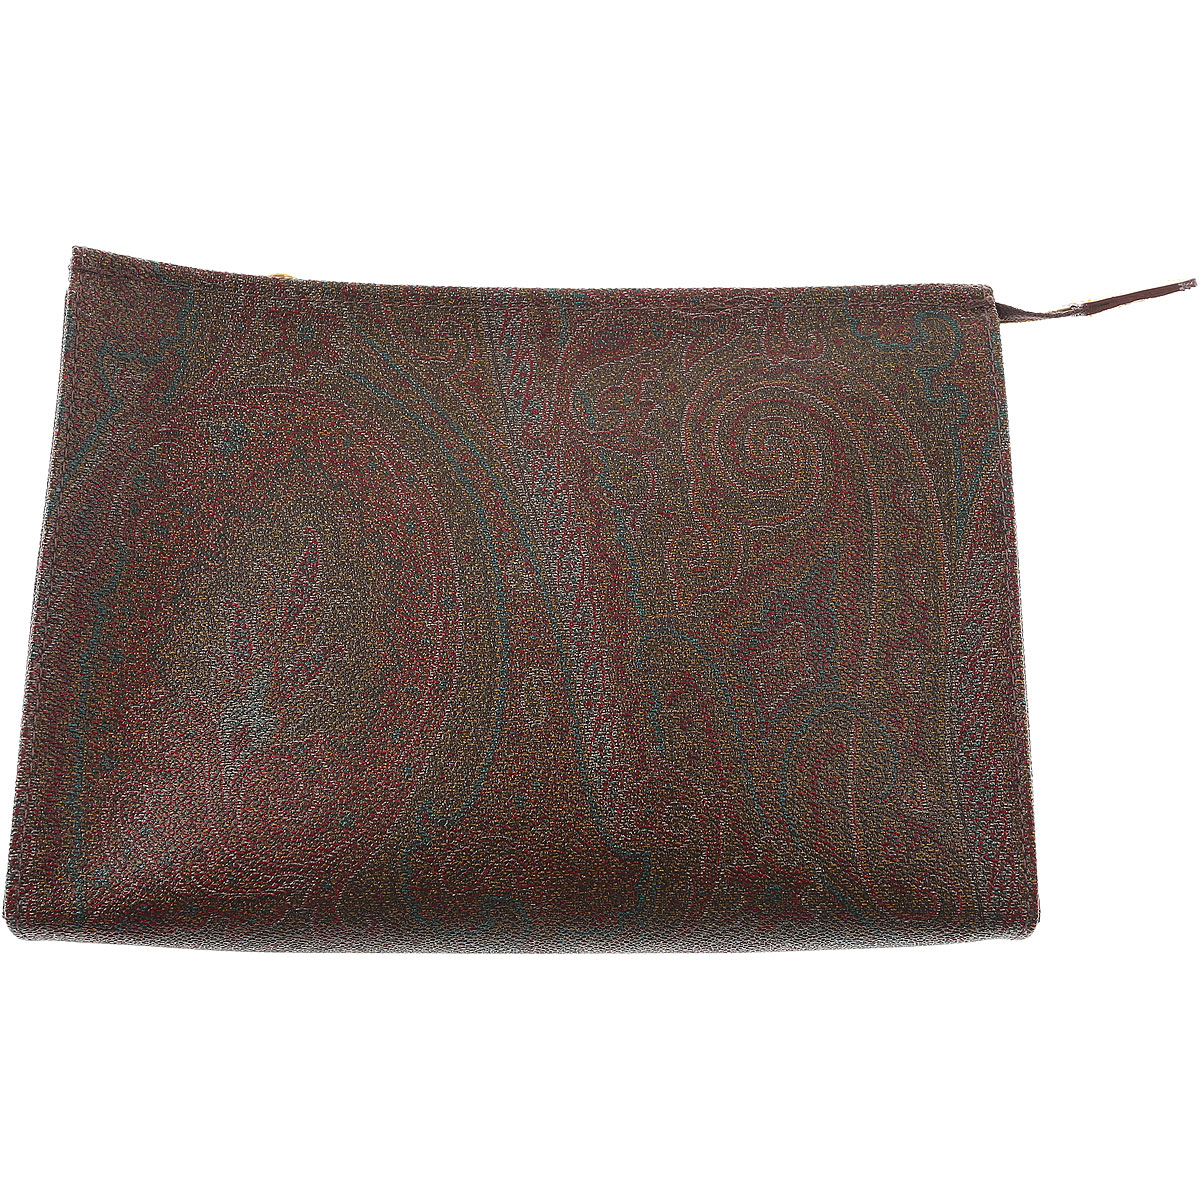 Image of Etro Pouches, Brown, Coated Canvas, 2017